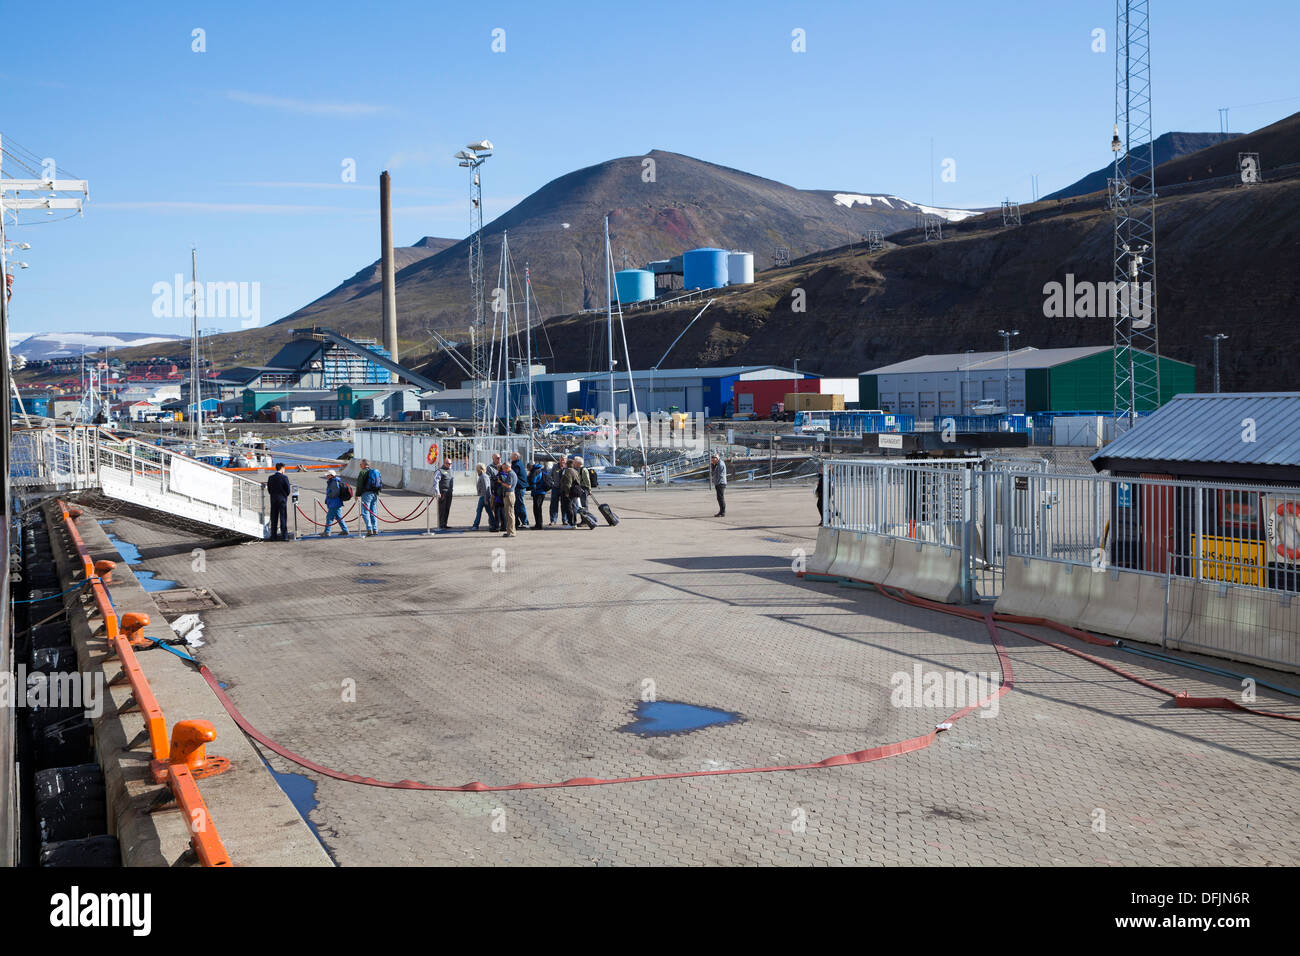 Expedition ship passengers embarking at the wharf at Longyearbyen, Spitsbergen, Norway - Stock Image